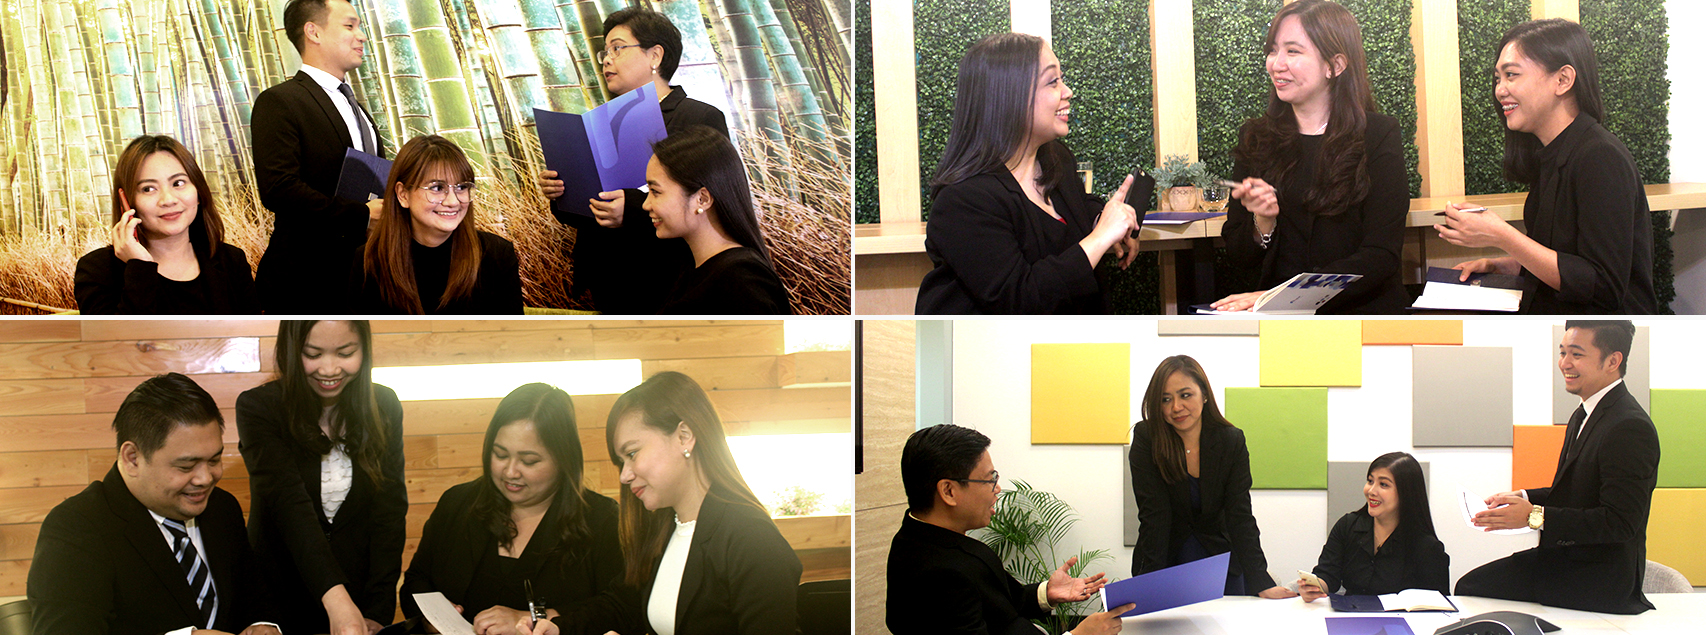 RGF Executive Search Philippines client-services